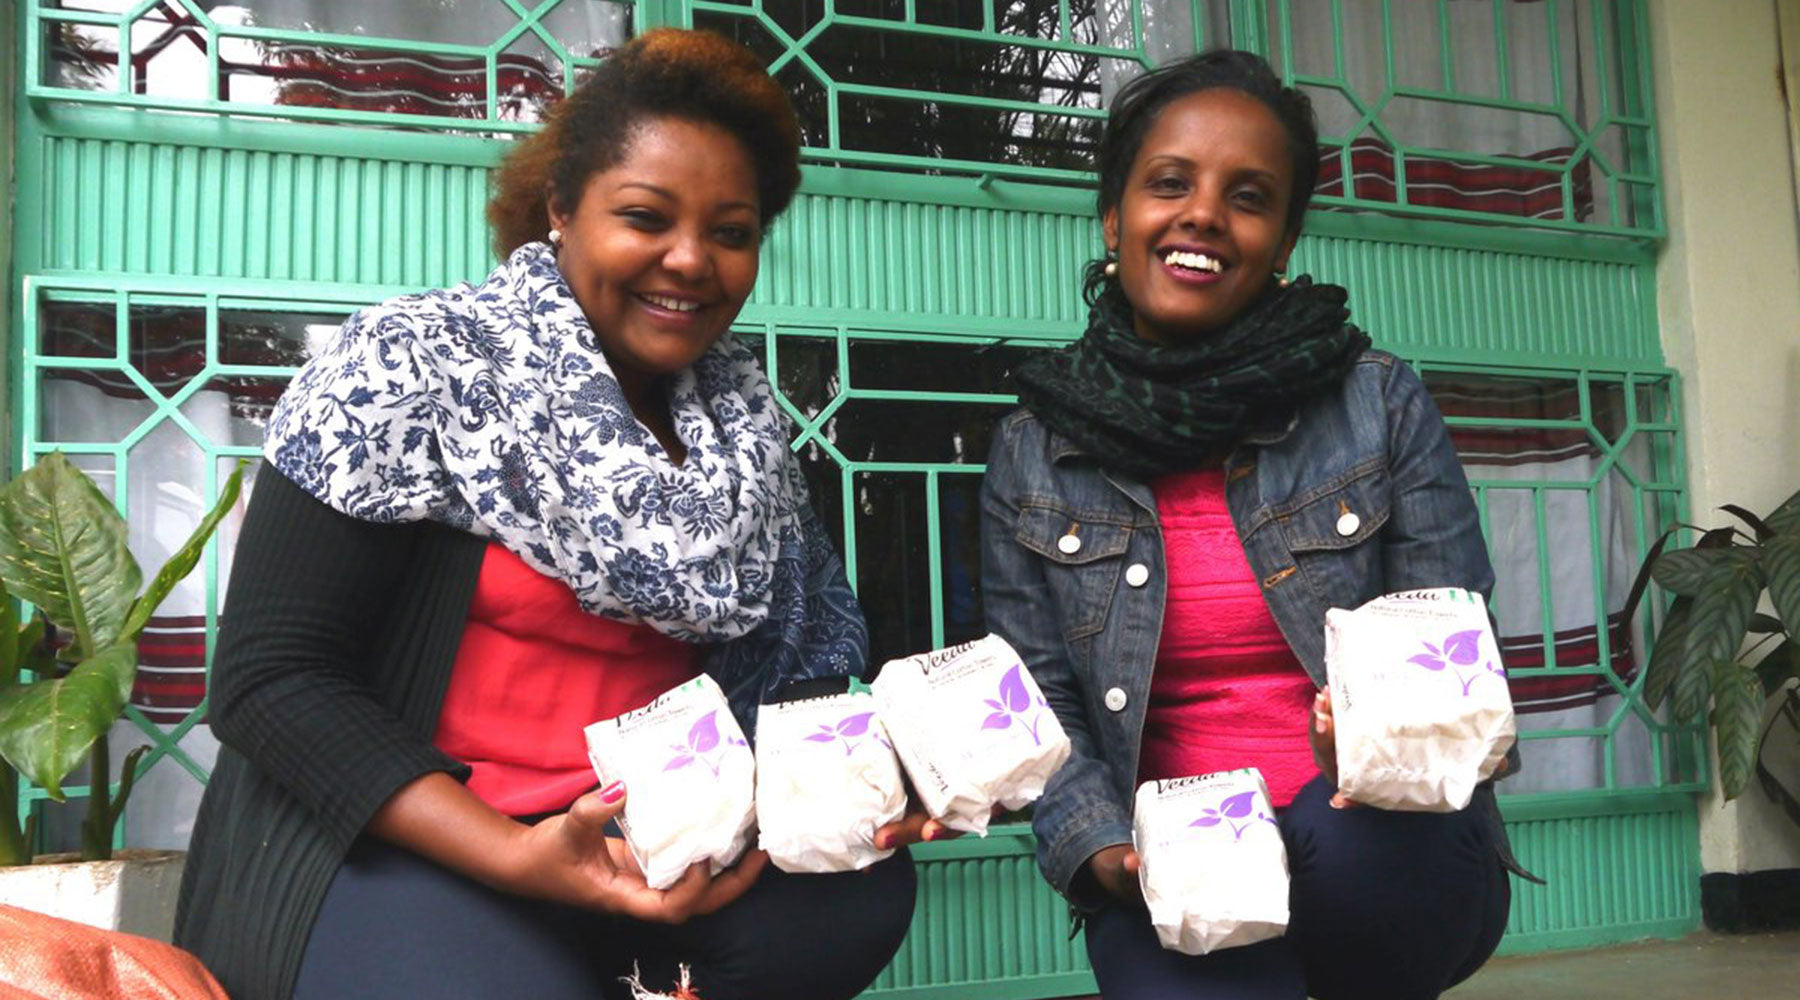 Two women holding Veeda pads